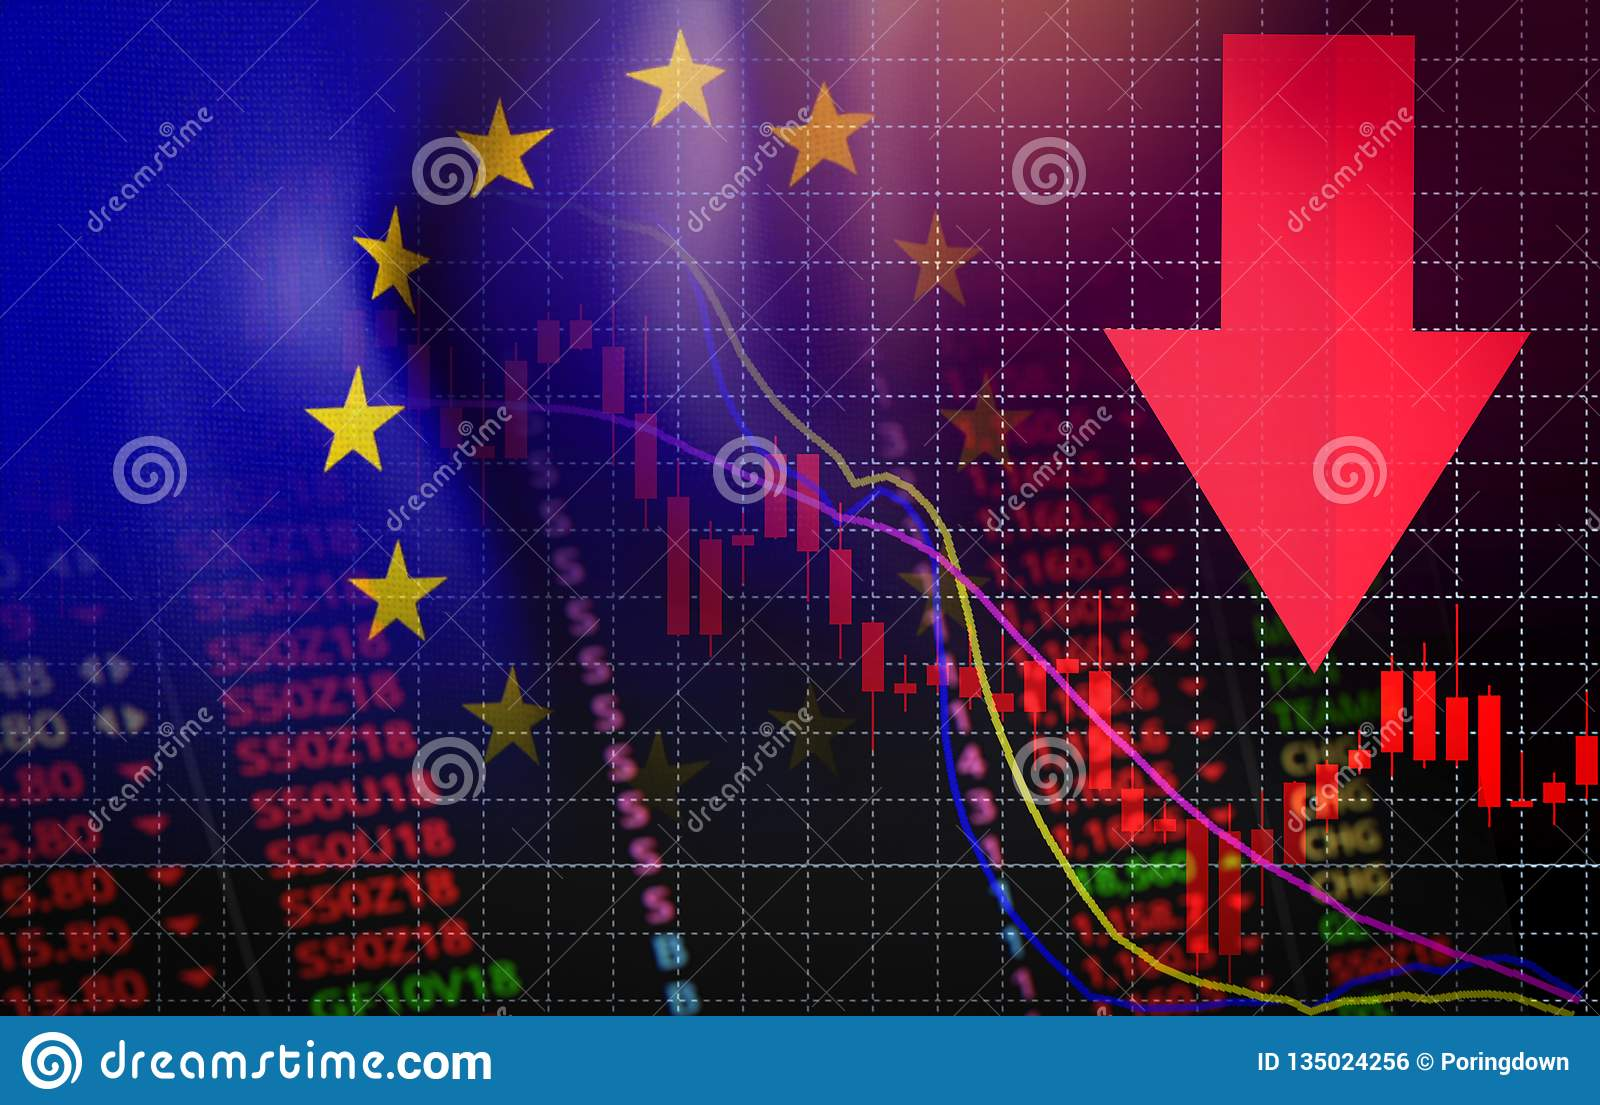 Euro crisis economic financial banking Investment problem euro money crisis red price arrow down chart fall